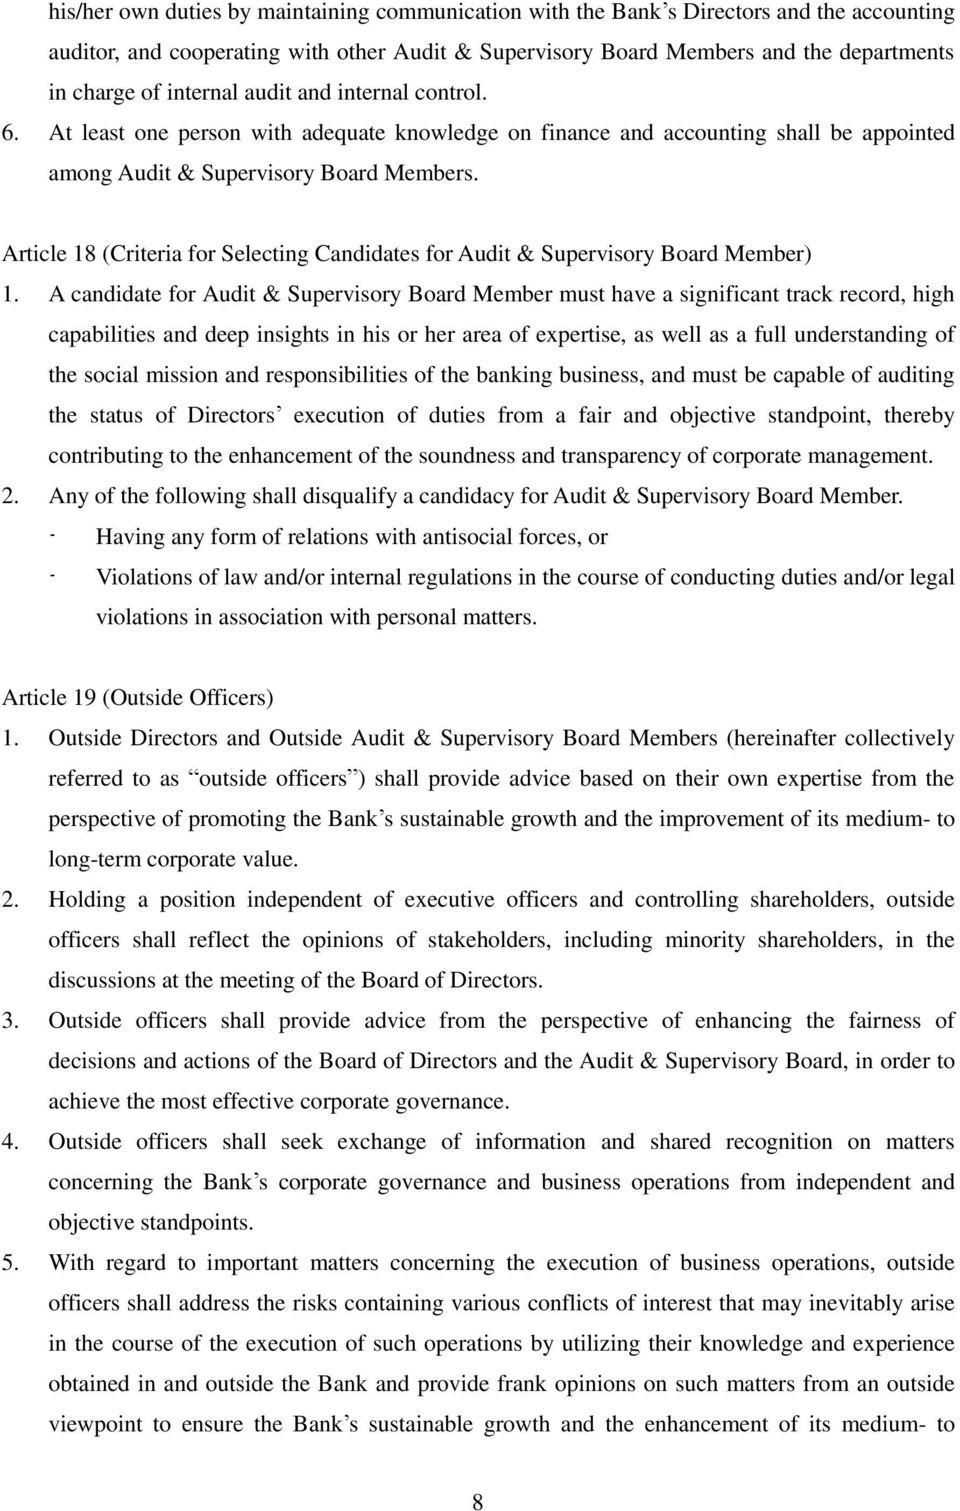 Article 18 (Criteria for Selecting Candidates for Audit & Supervisory Board Member) 1.